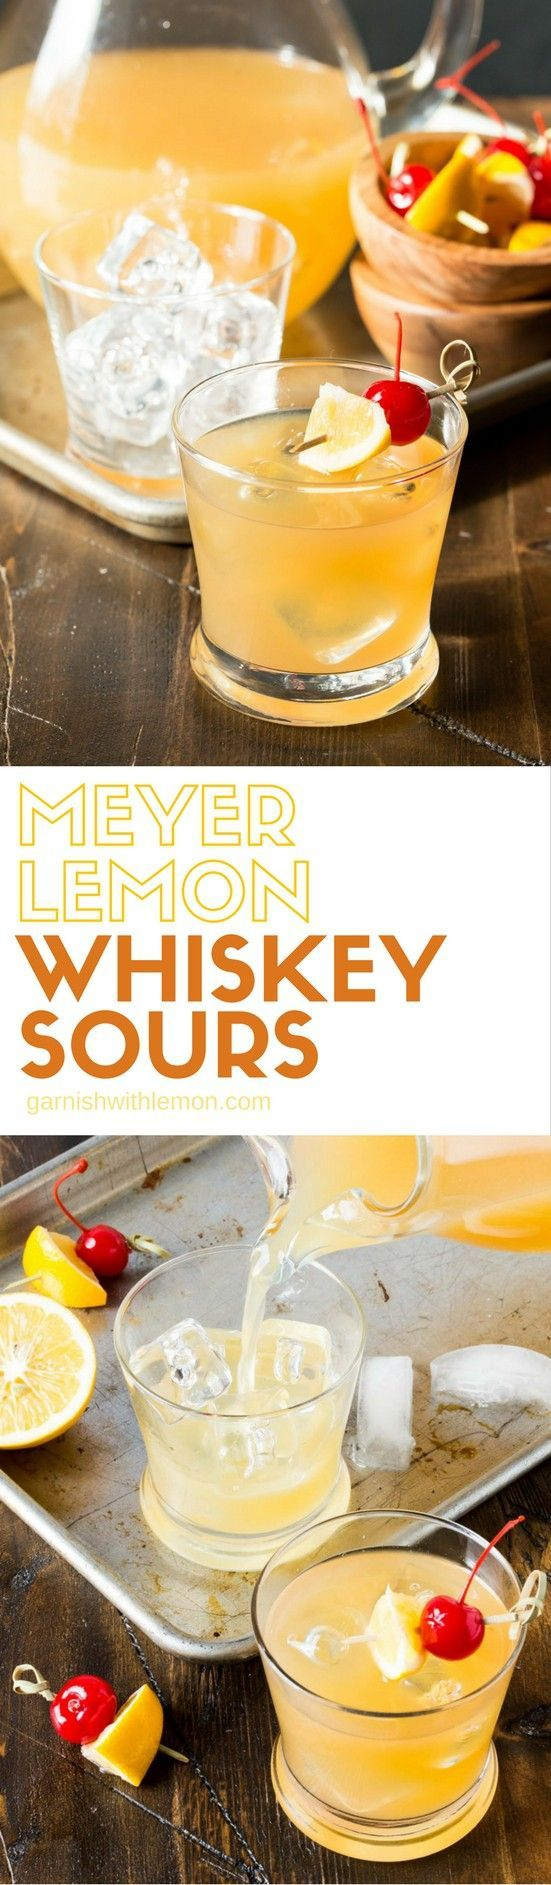 No need to play bartender to your guests with this batch cocktail recipe for fresh Meyer Lemon Whiskey Sours!  #whiskey #whisky #cocktails #drinks #batchcocktails